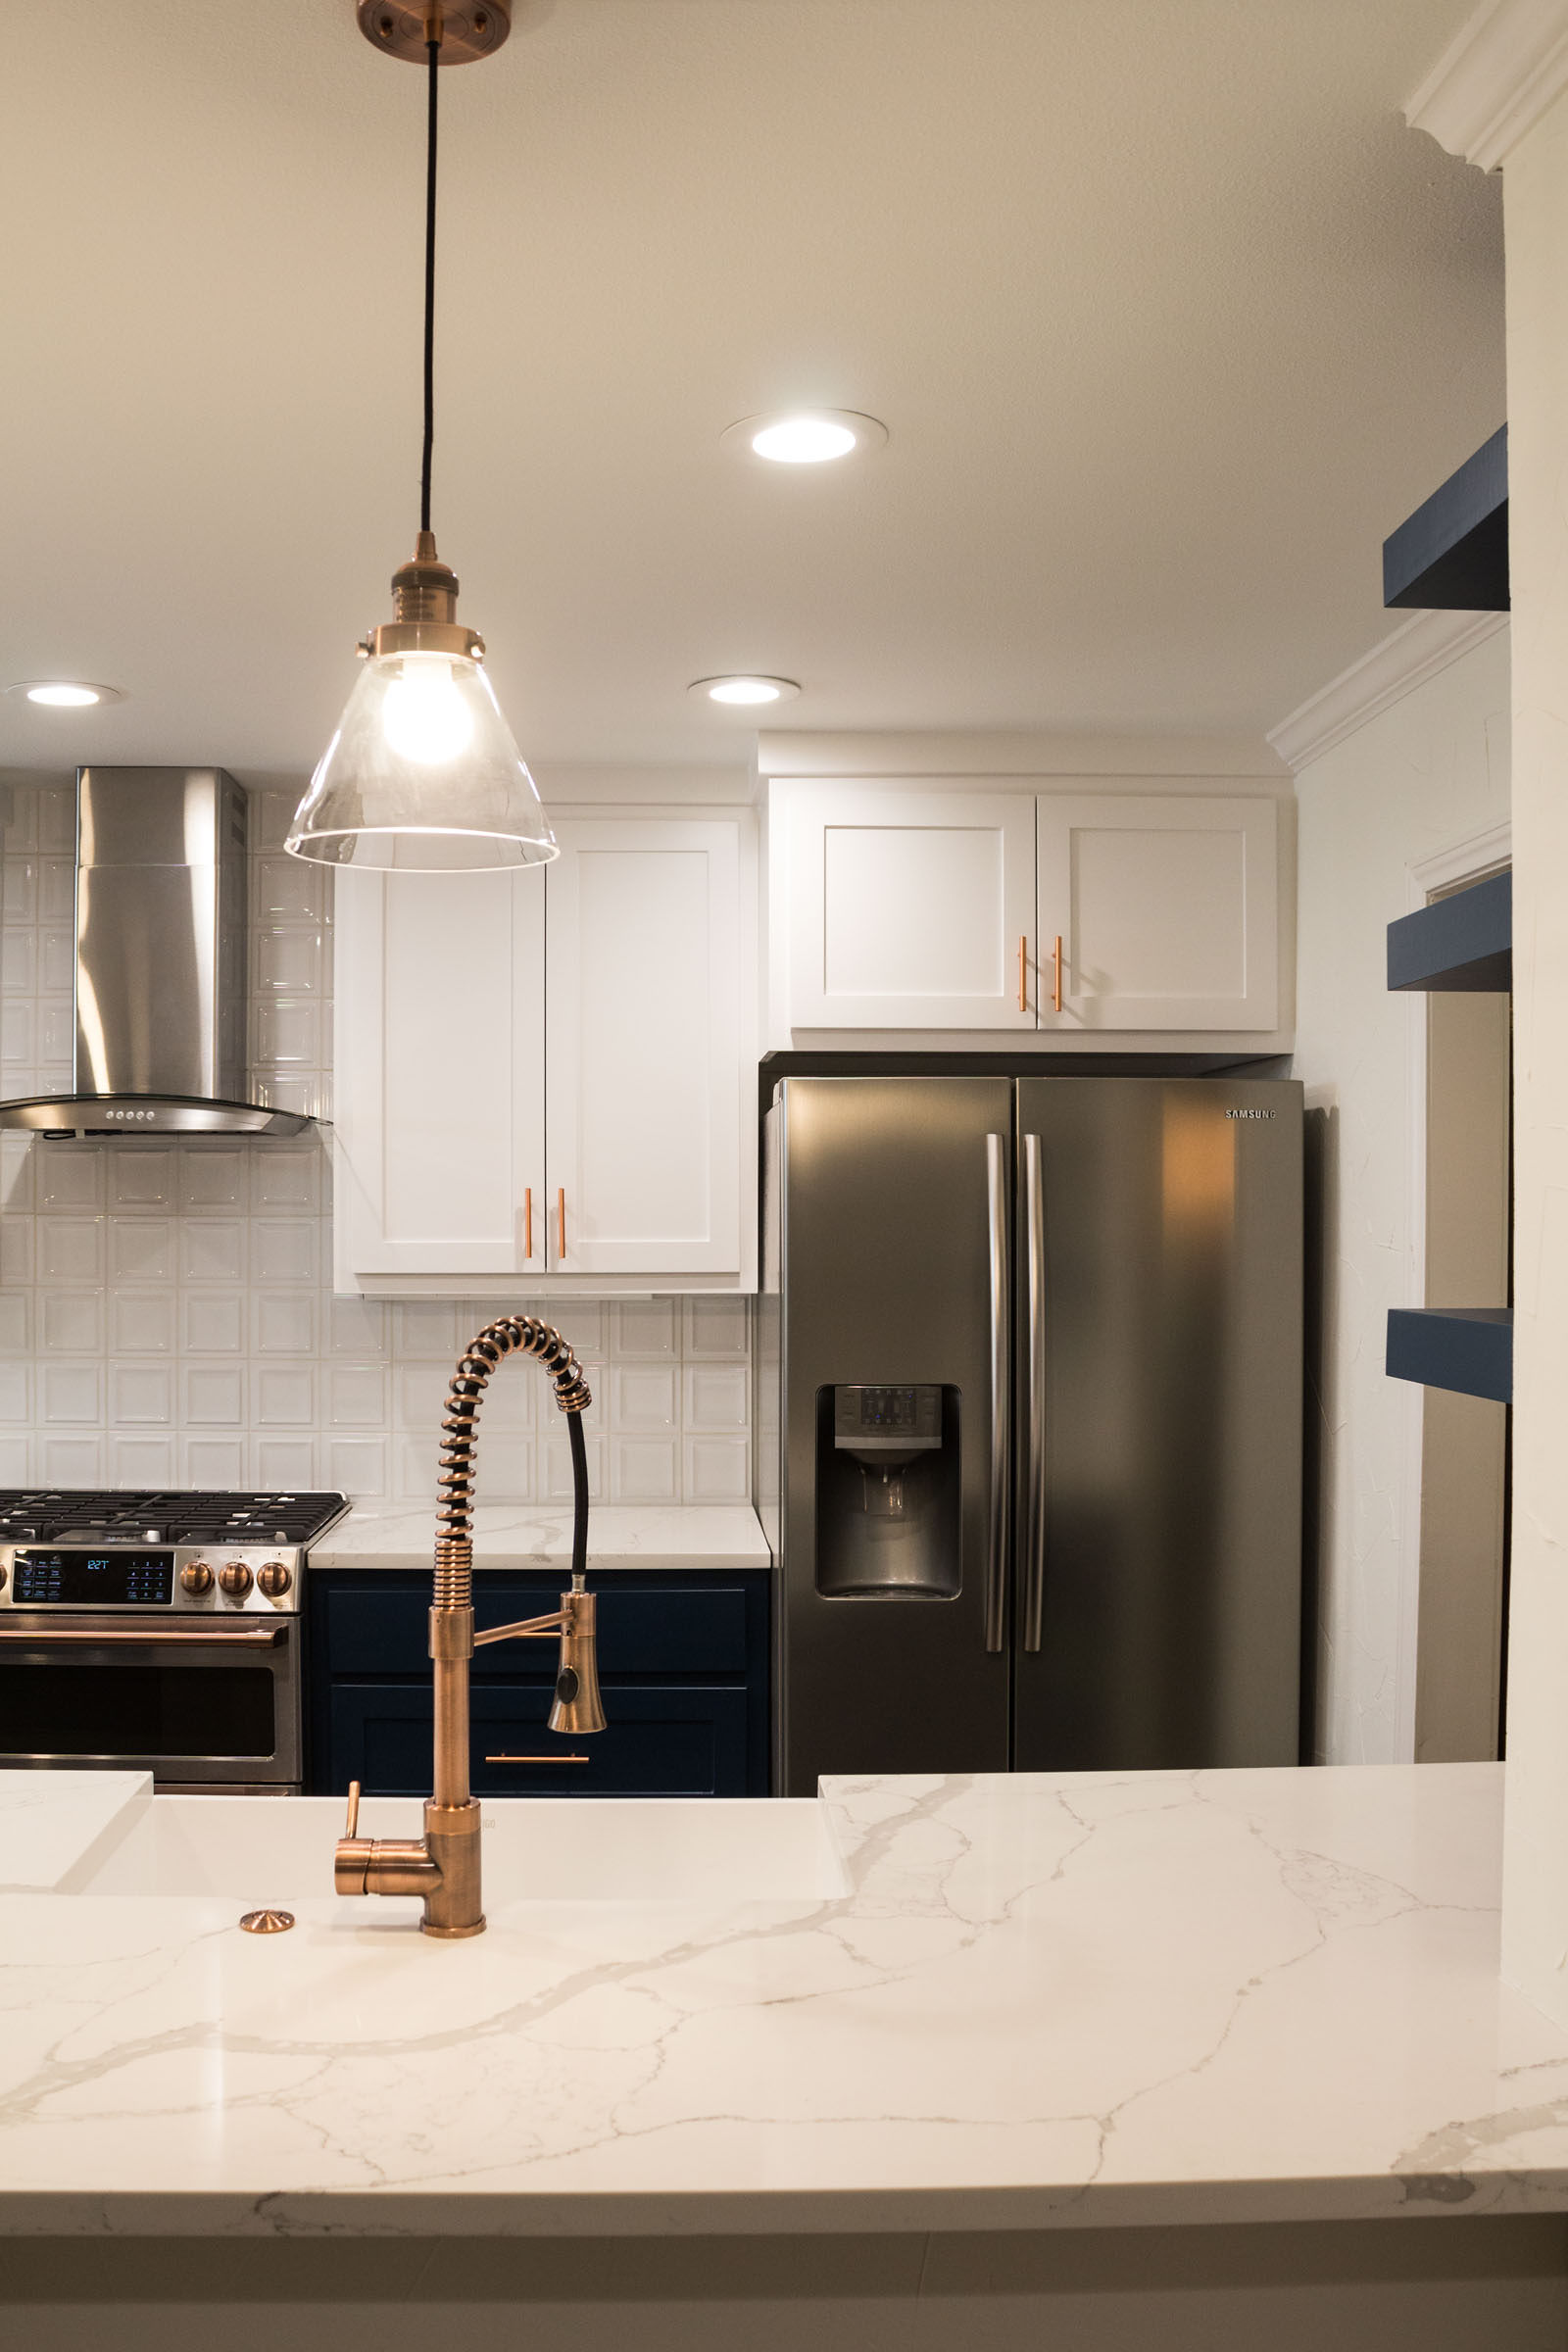 Kitchen remodel with white counters, navy cabinets, and copper hardware